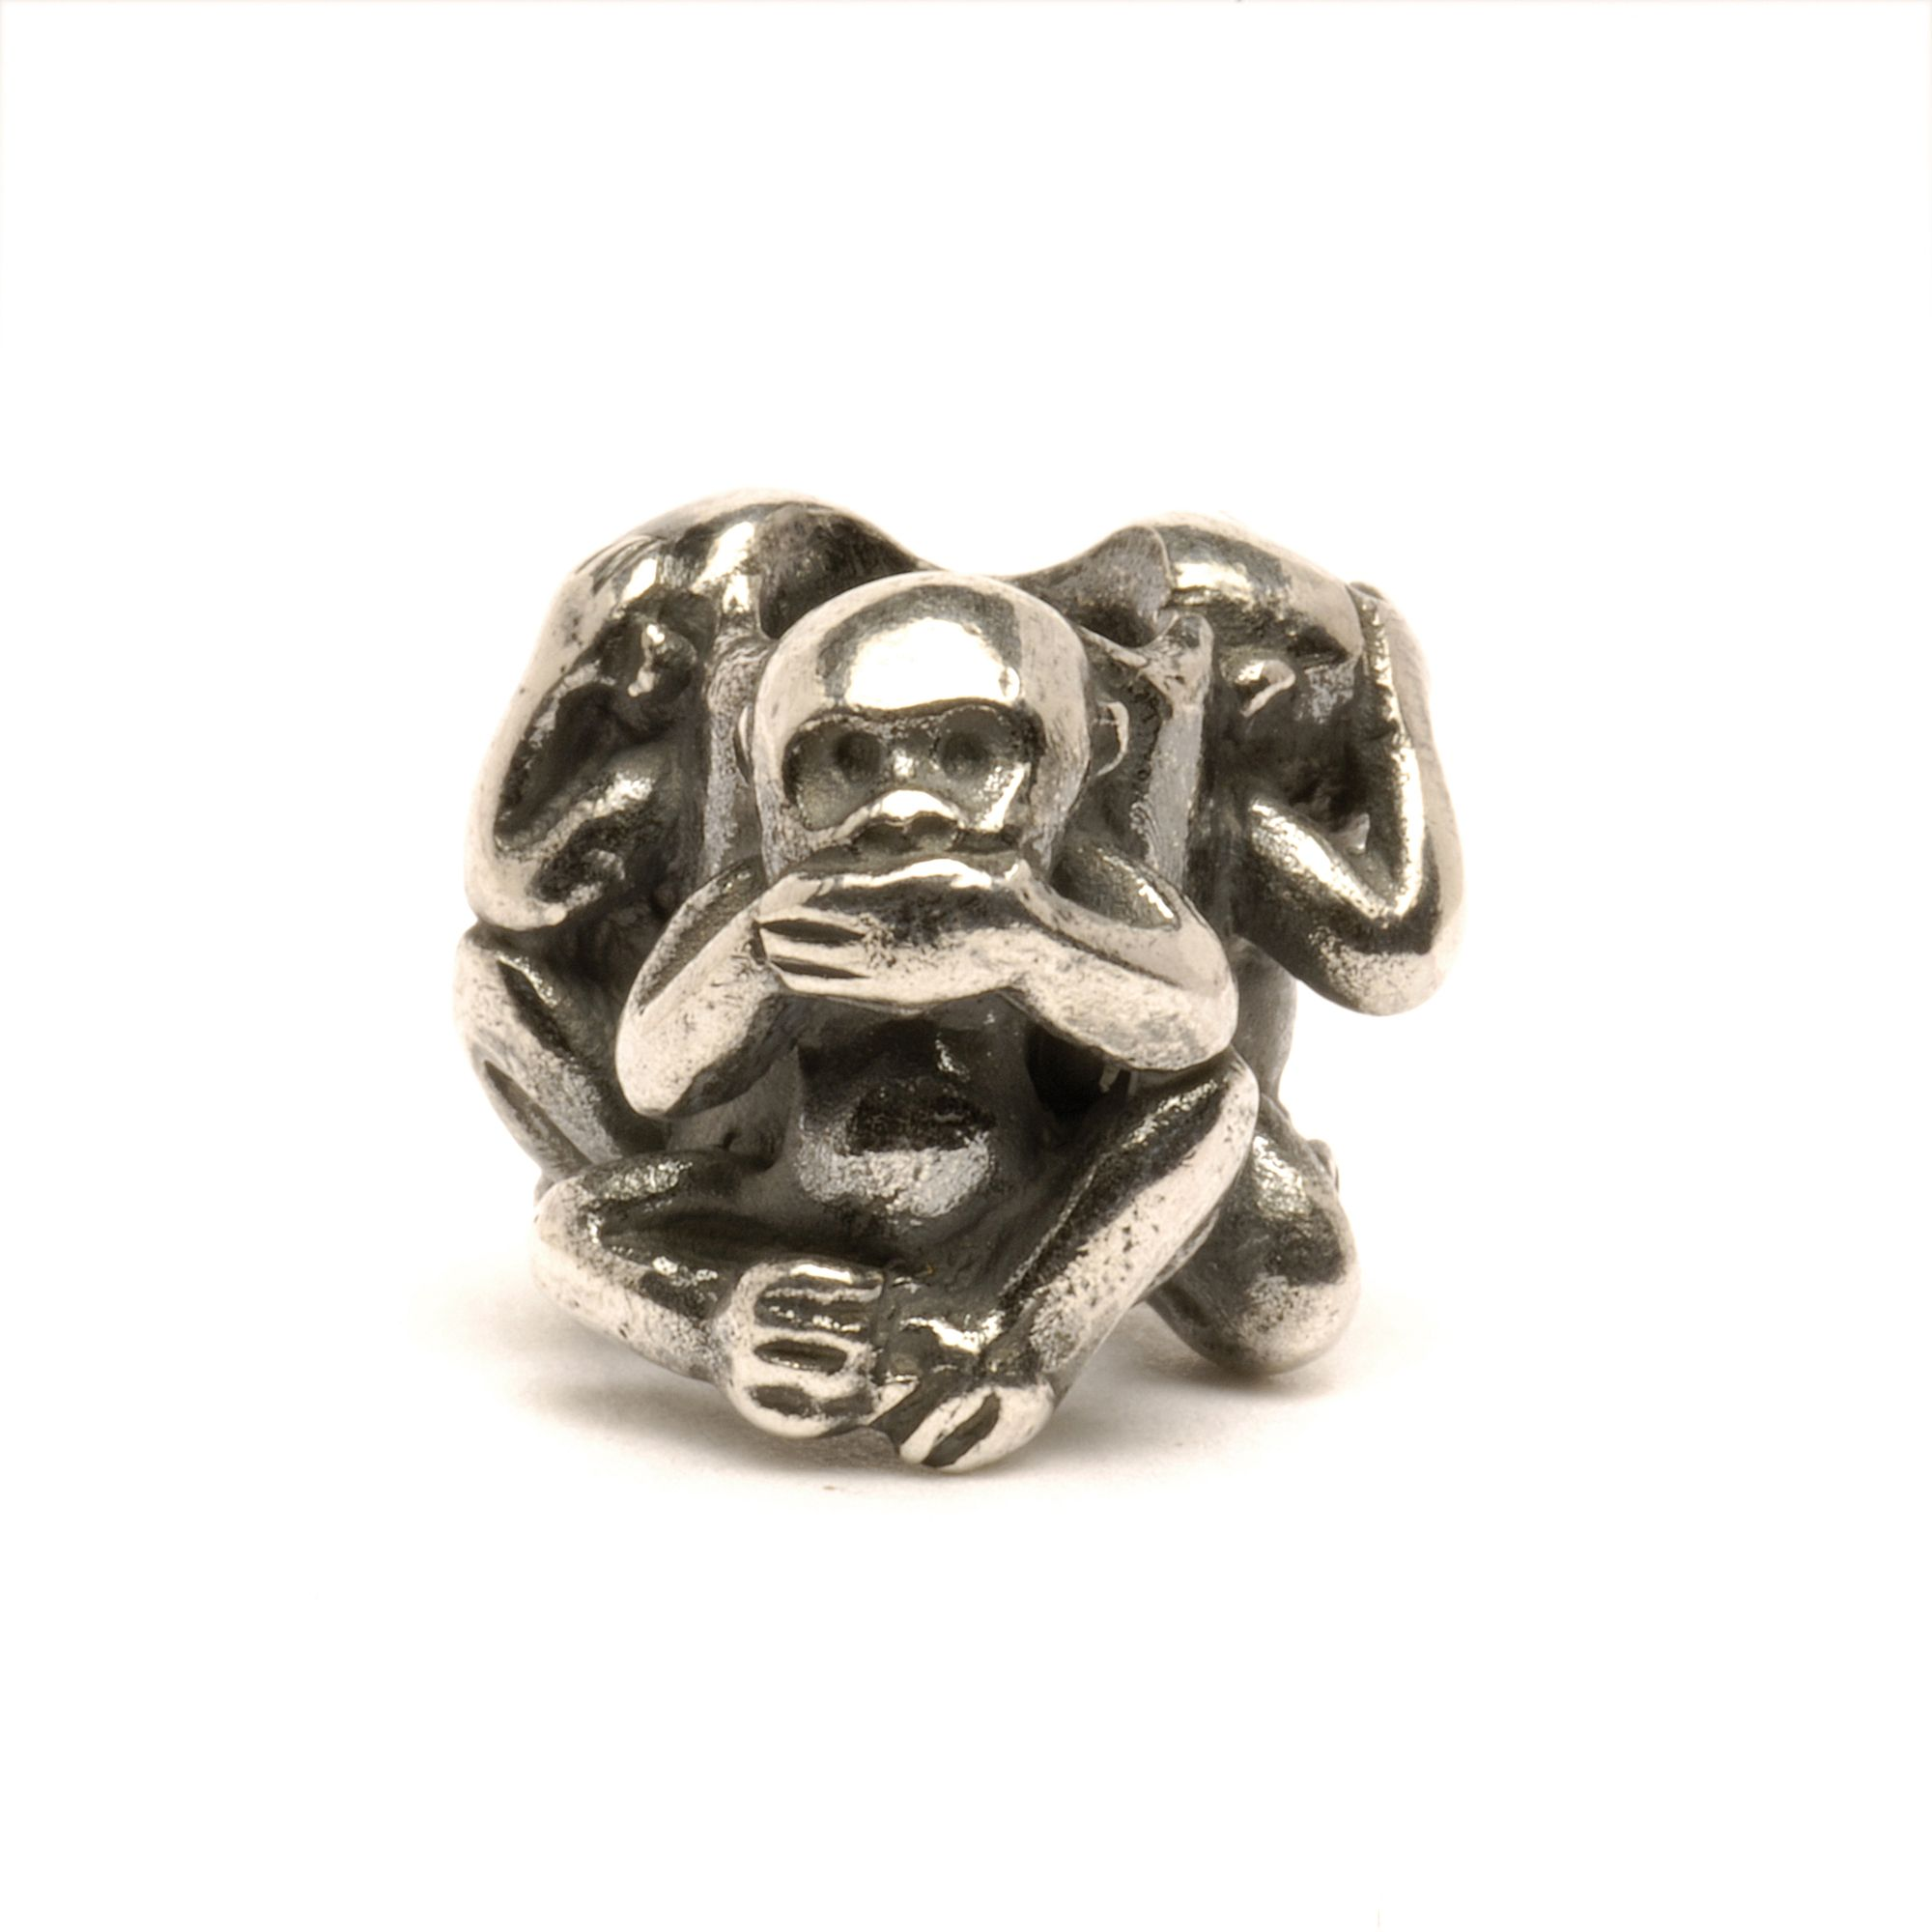 Three Monkeys silver charm bead